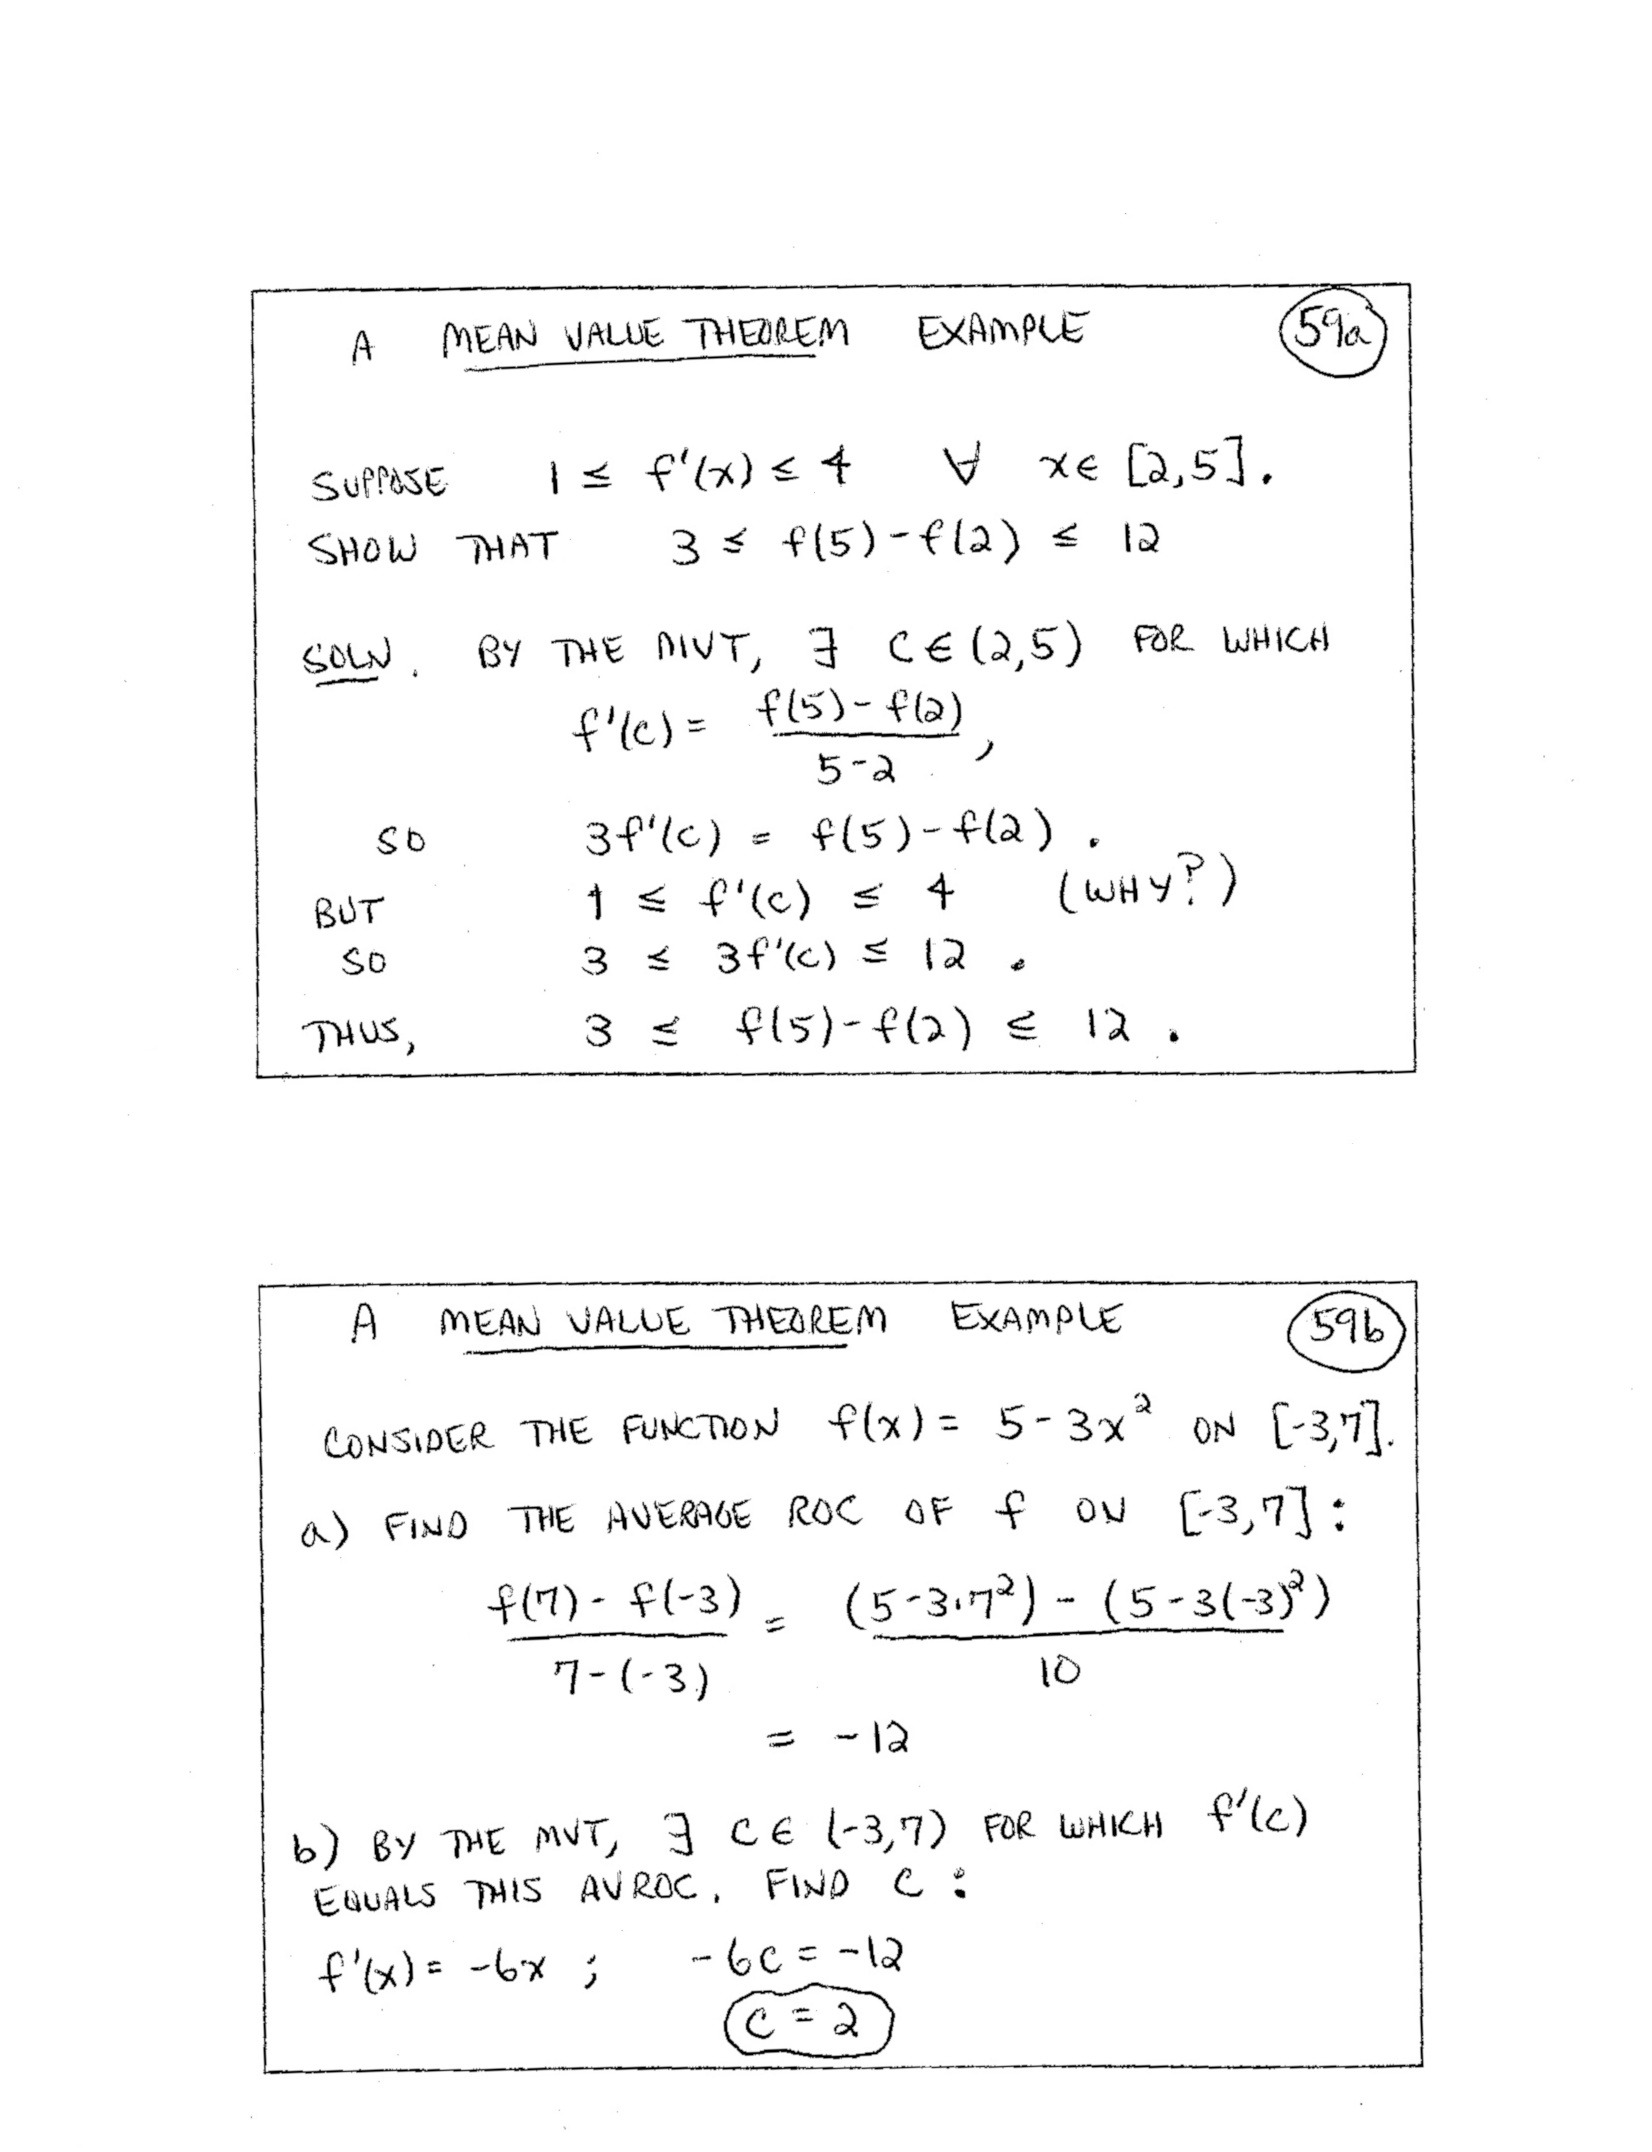 Calculus Worksheet On Functions Defined By Integrals